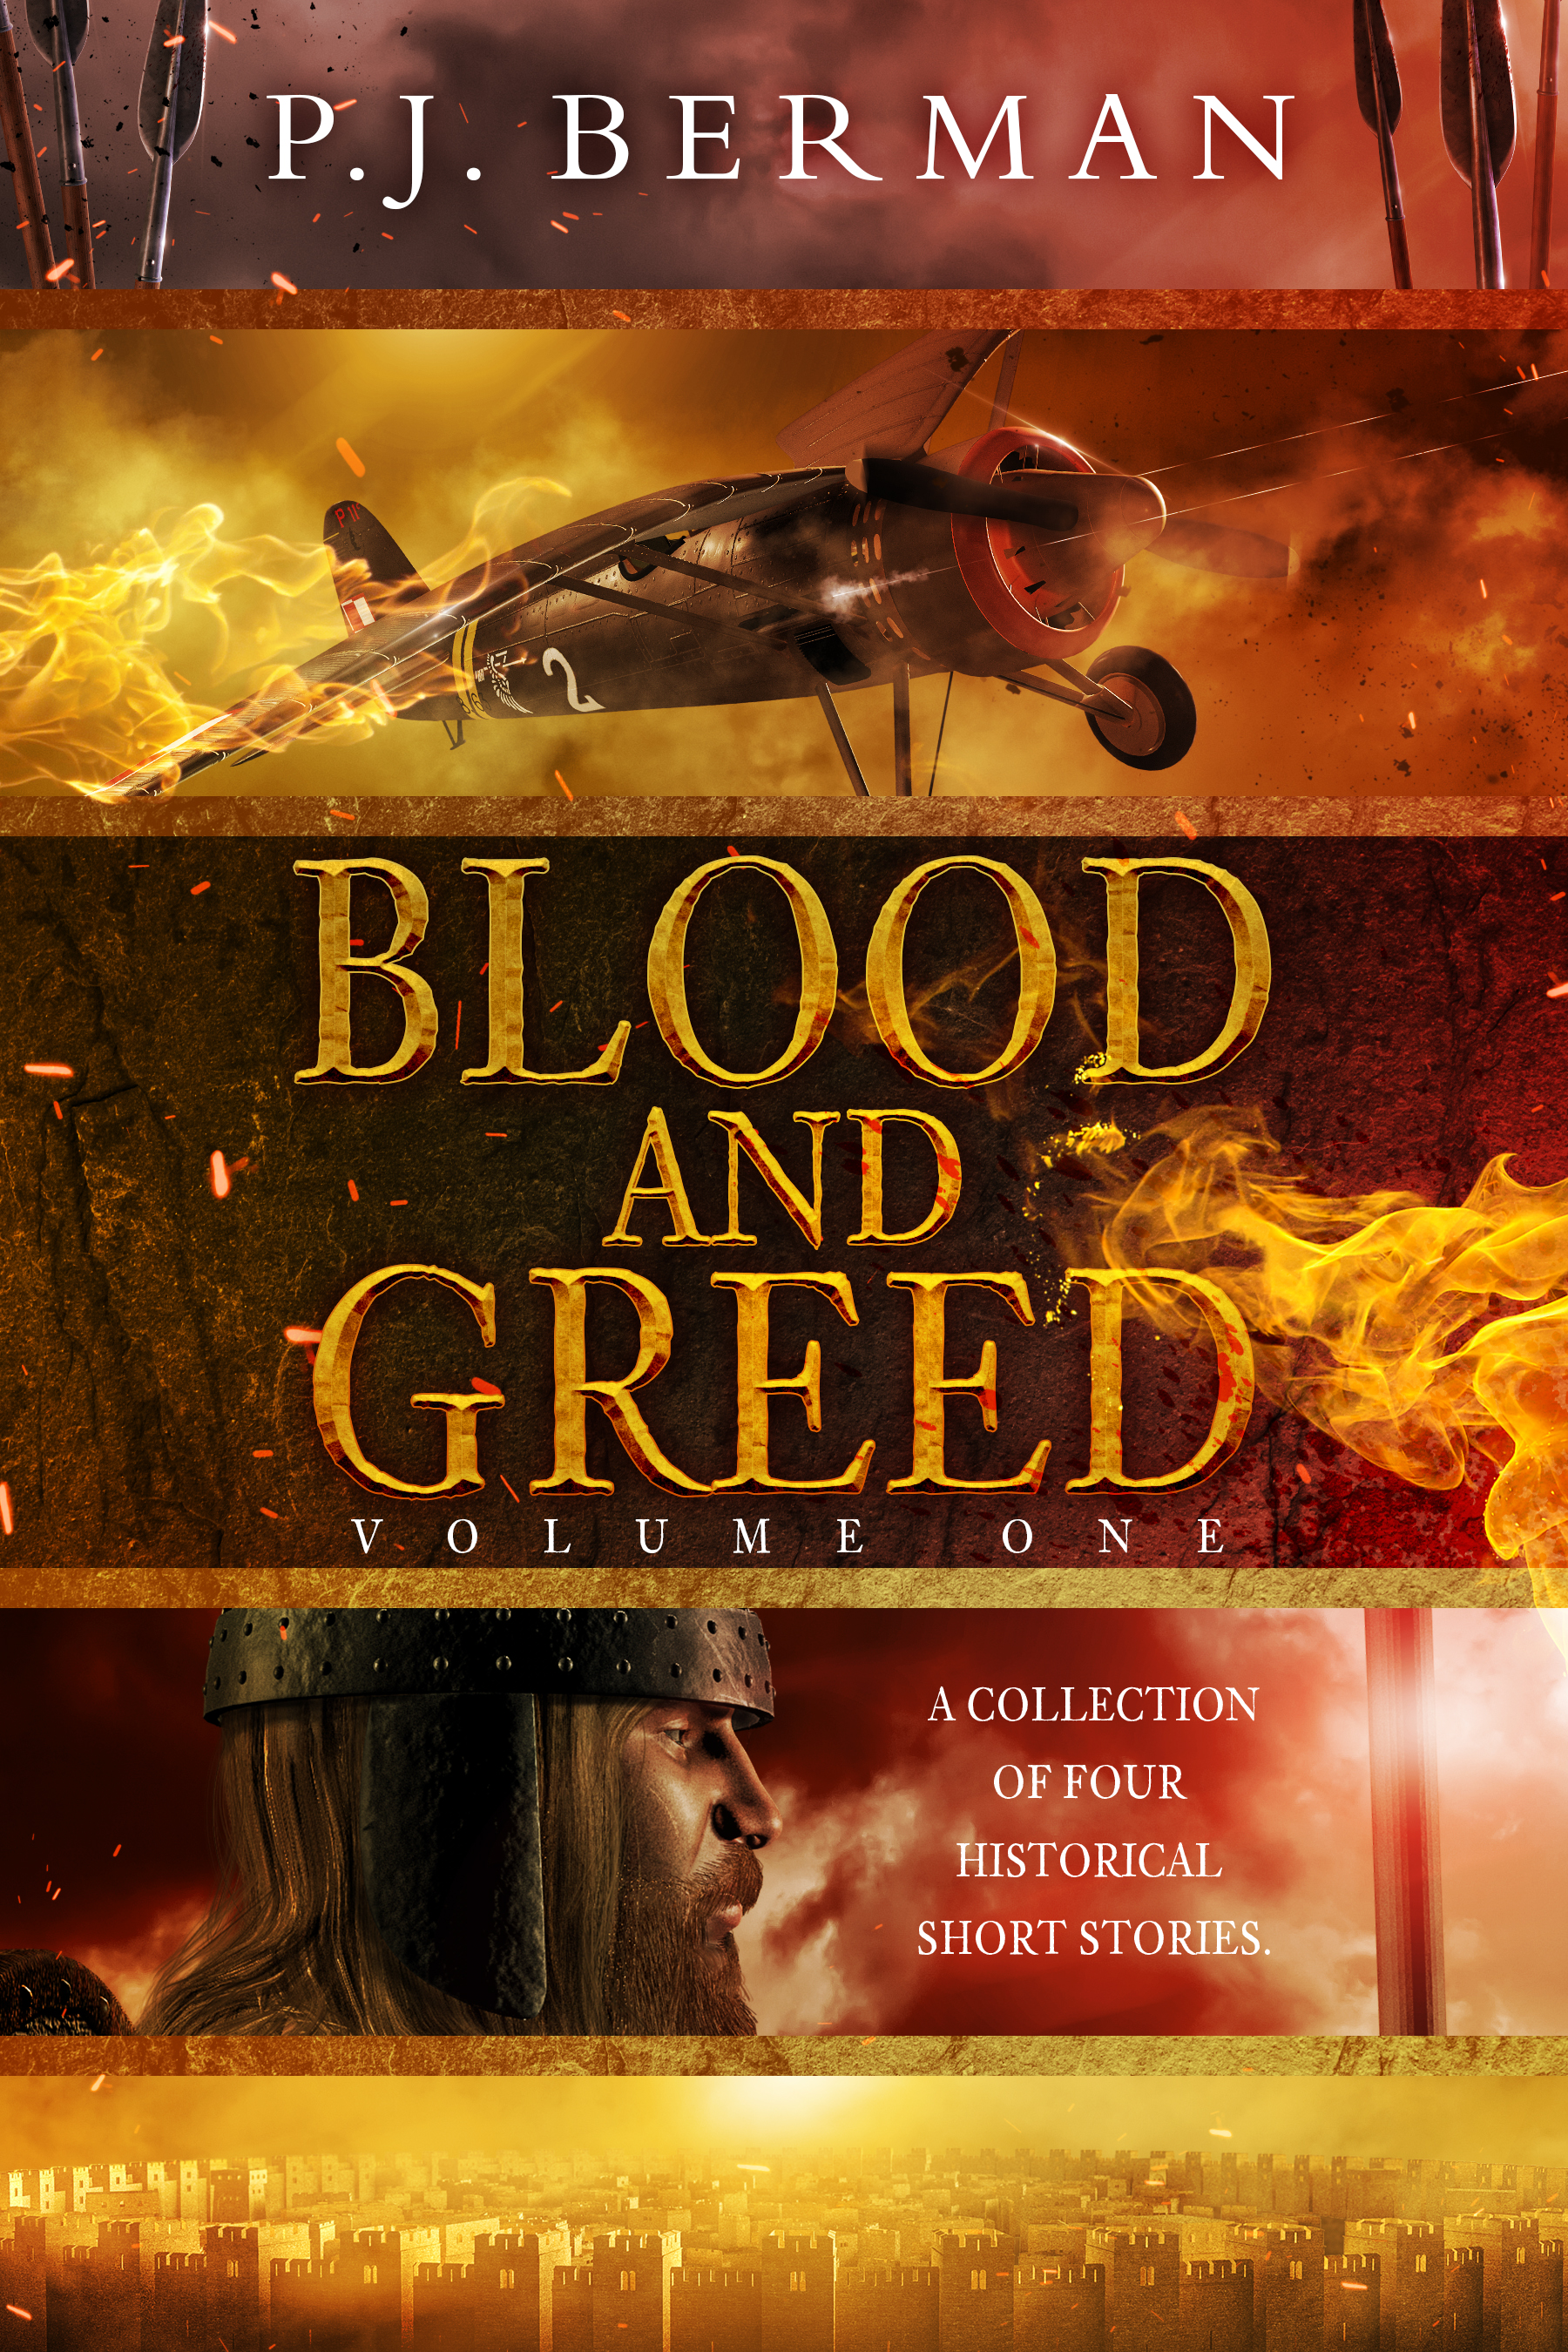 Blood and Greed: Volume 1: Short Stories of Historical Fiction